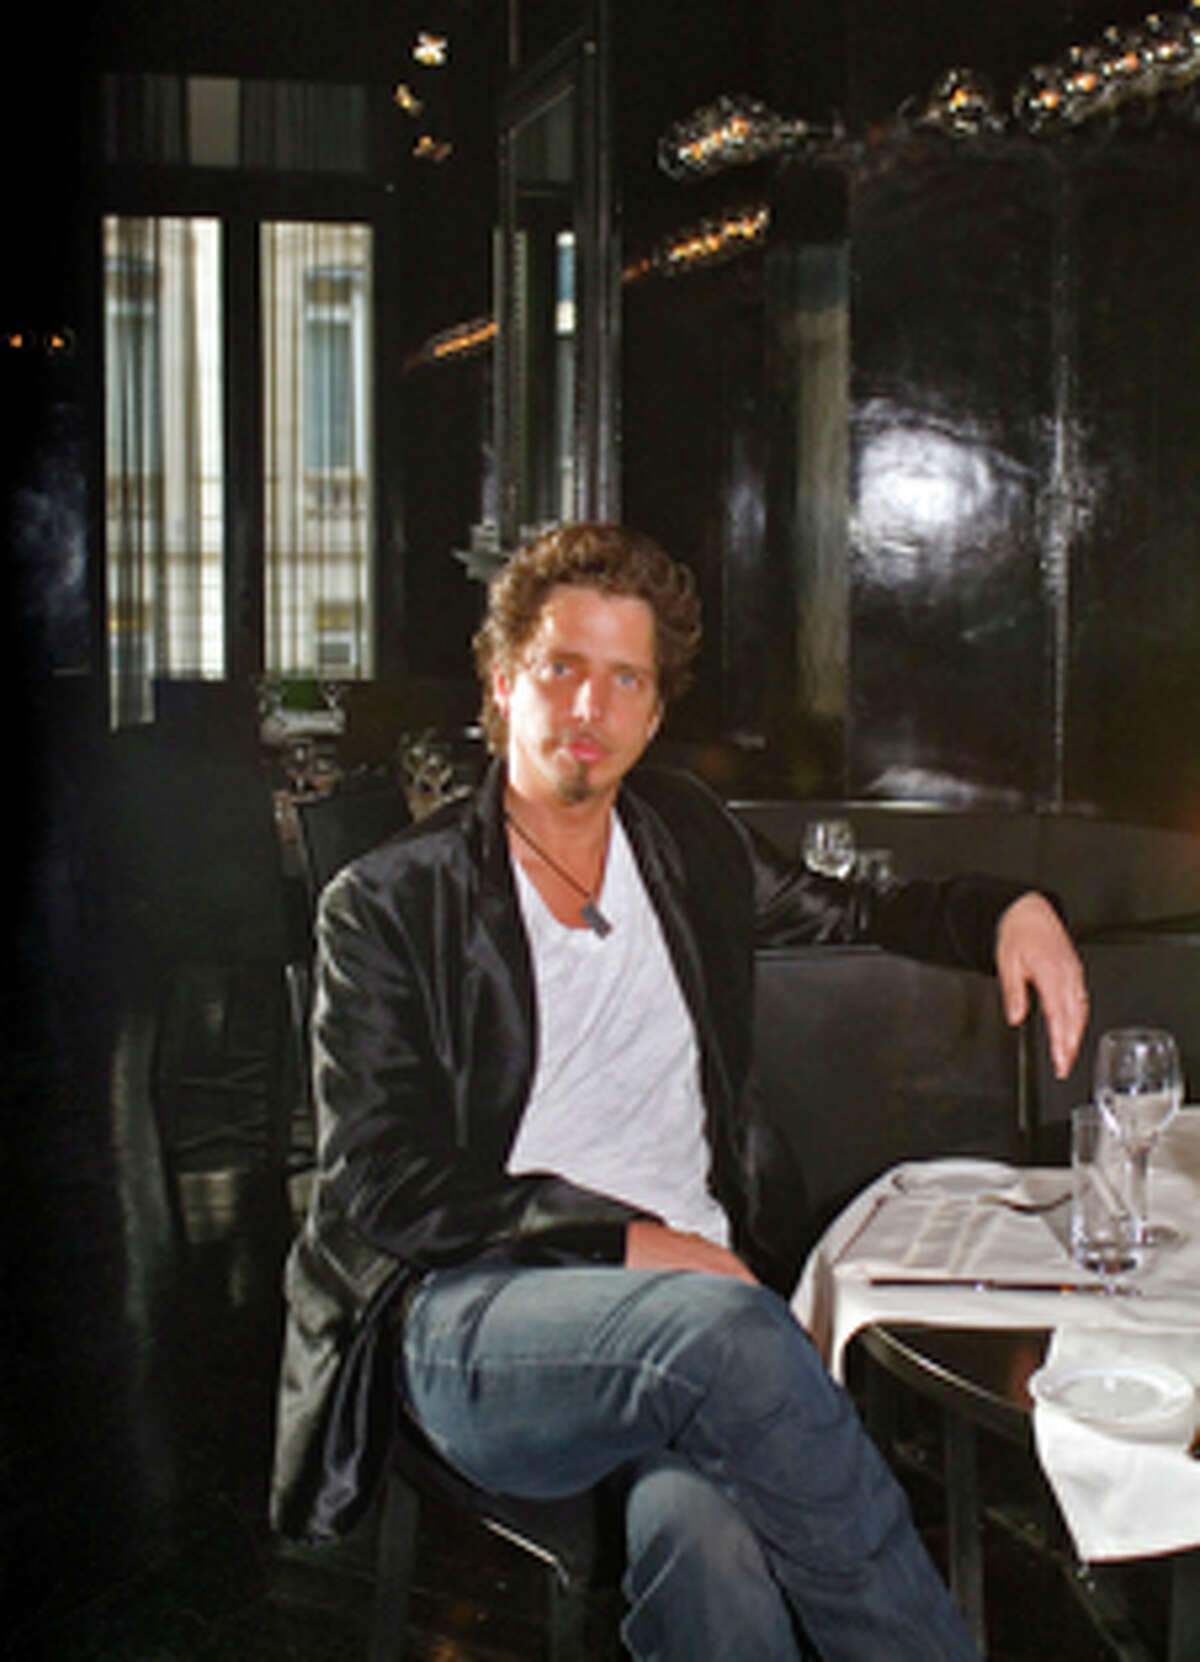 Chris Cornell (sitting in his new restaurant) remembers his early days as a starving musician when his job as a cook had its benefits.